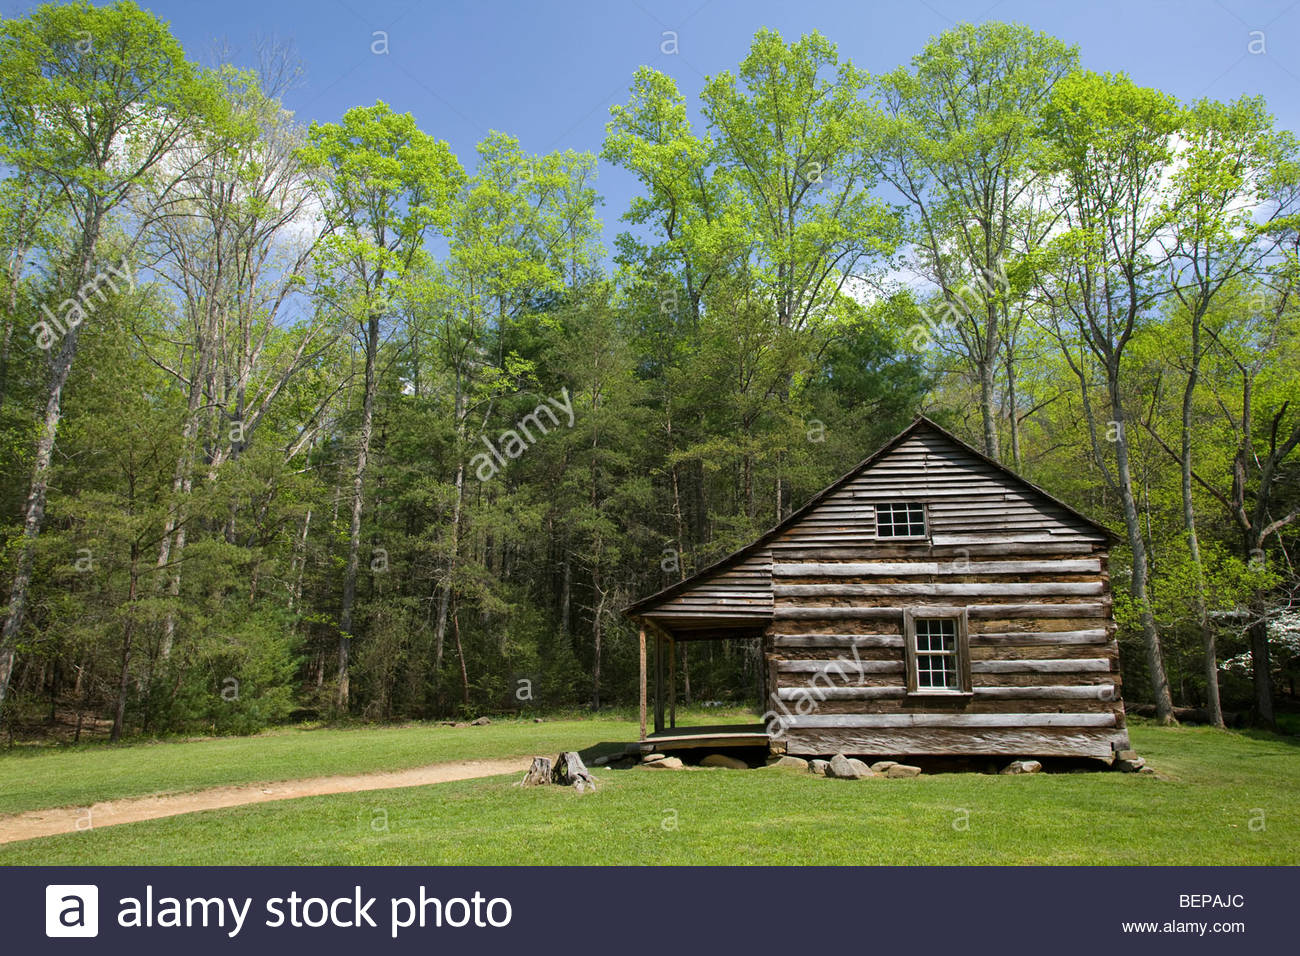 Carter Shields Cabin, Cades Cove, Great Smoky Mountain National Park - Stock Image